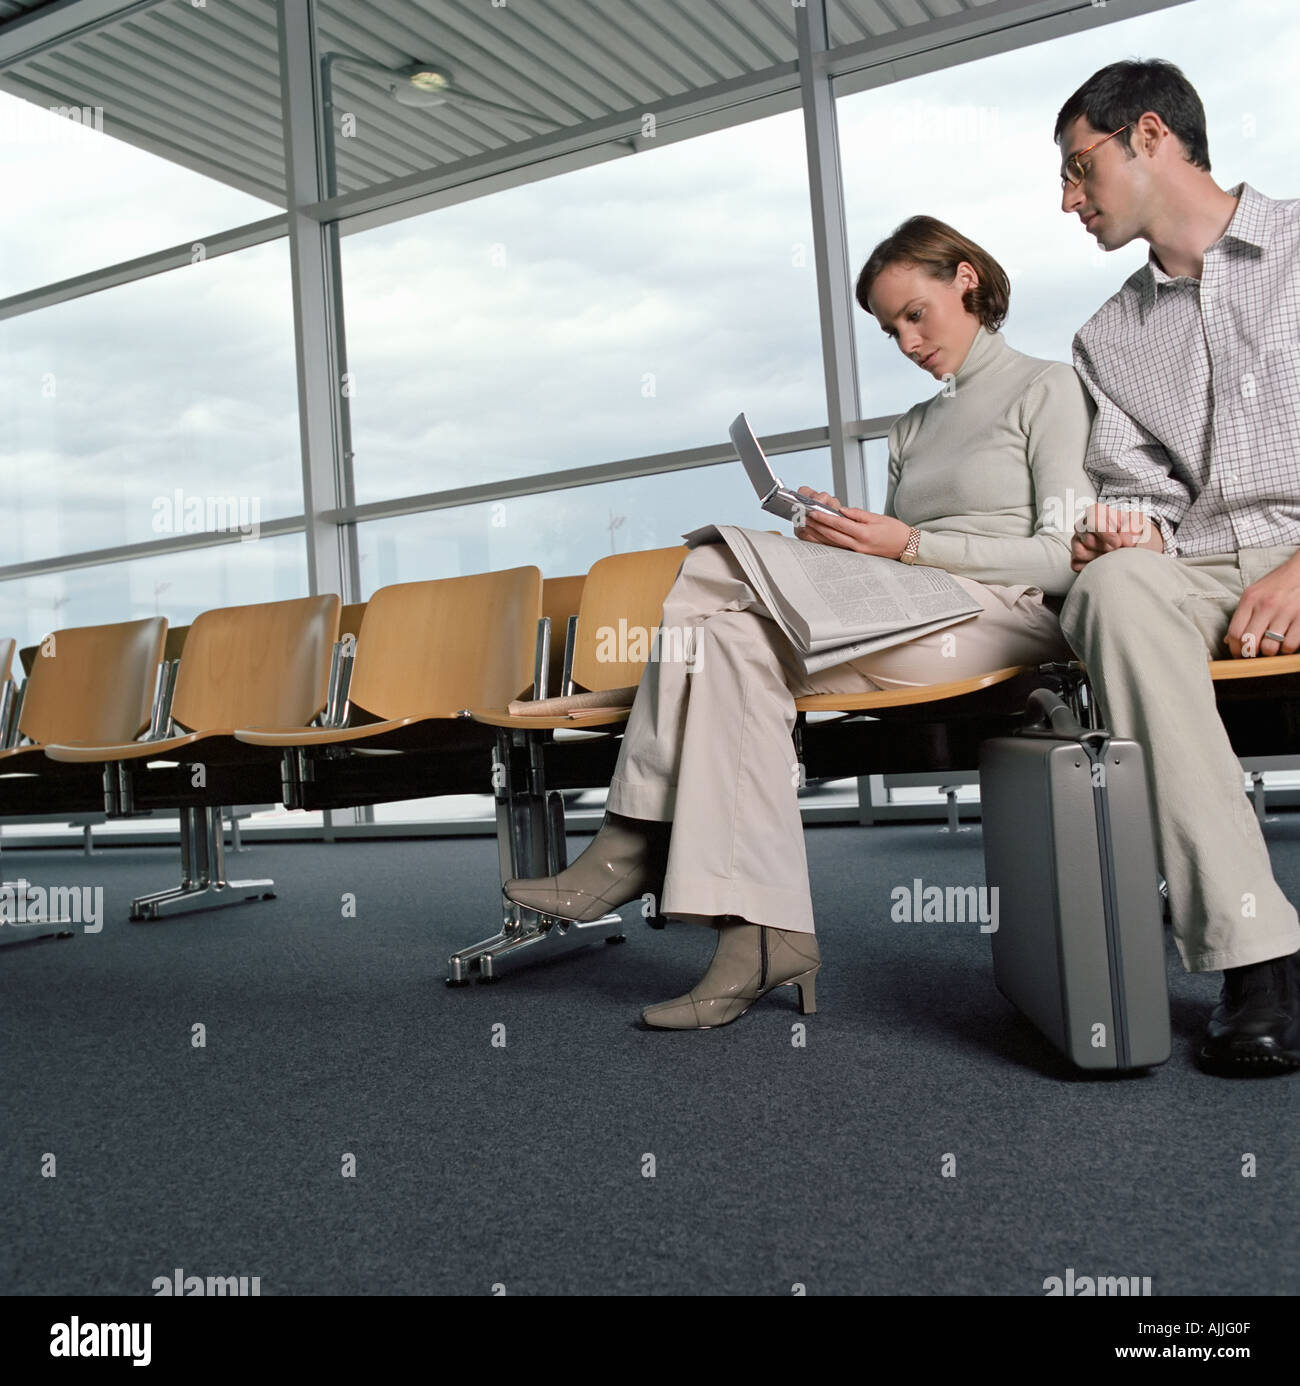 Two colleagues in a departure lounge - Stock Image